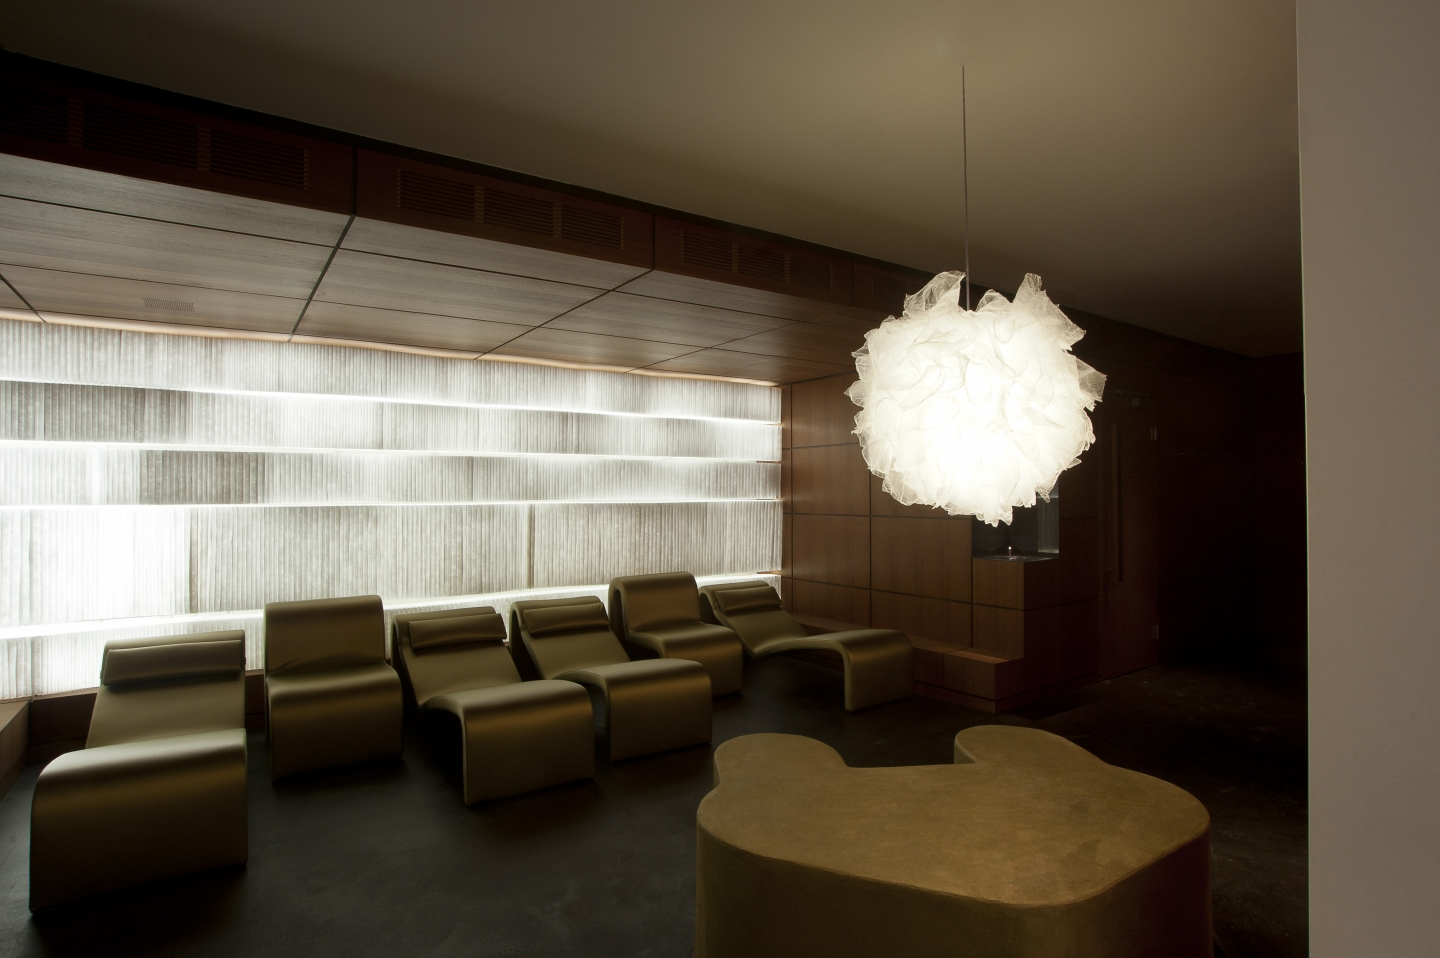 molo white textile softblocks + LED at the Eichstätte Spa in Zug, Switzerland